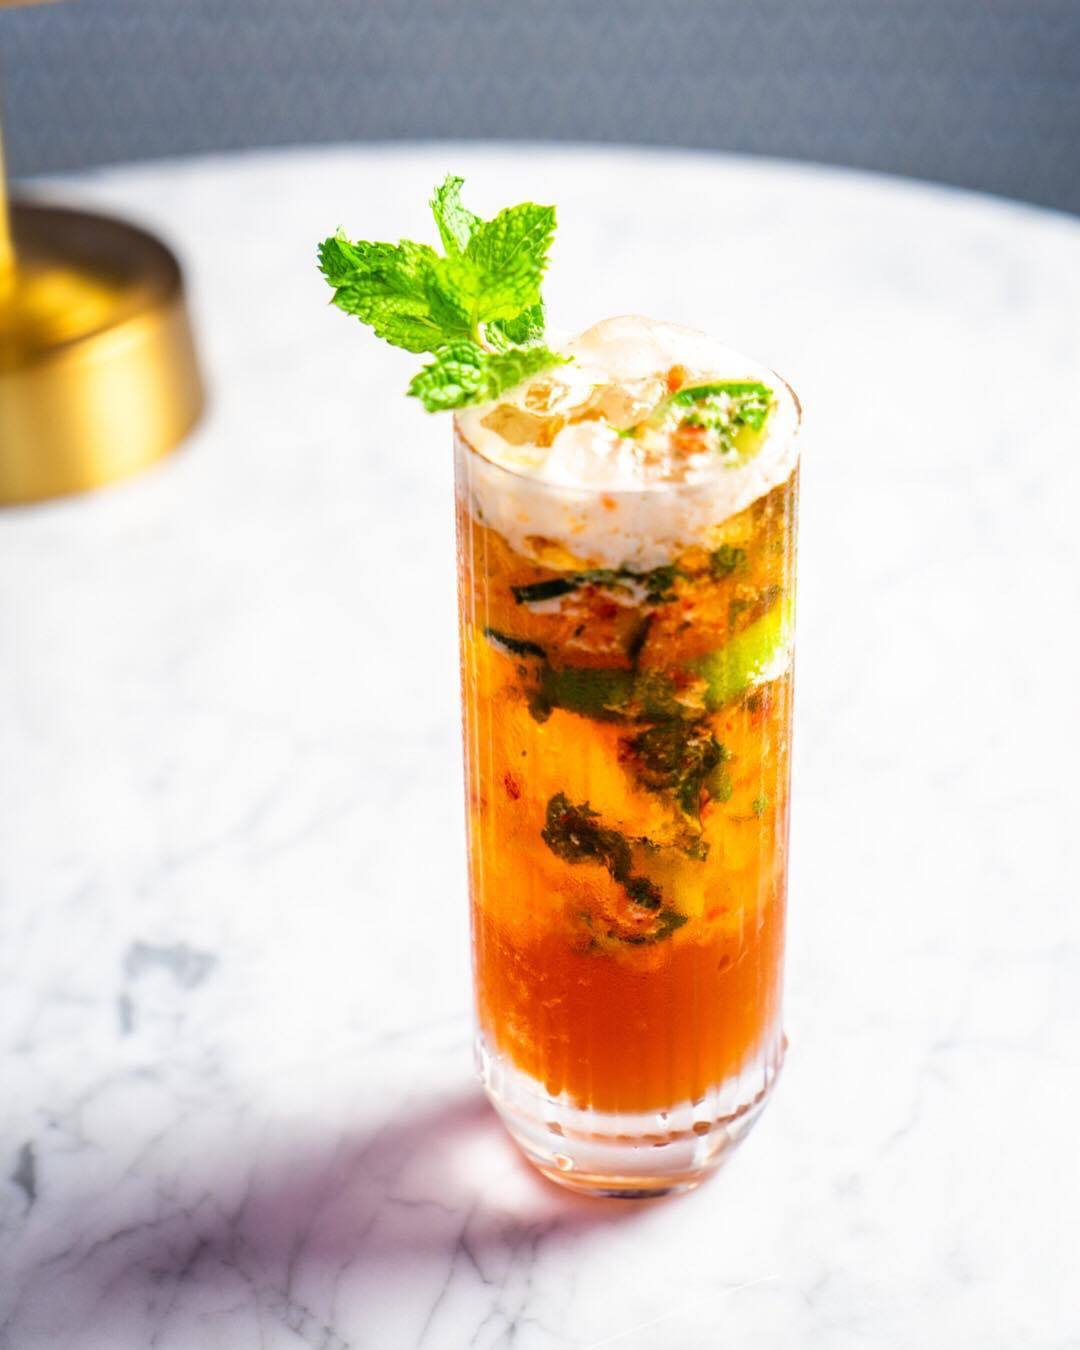 Pimm's Cup at The Draycott | Photo: @the_draycott, Instagram